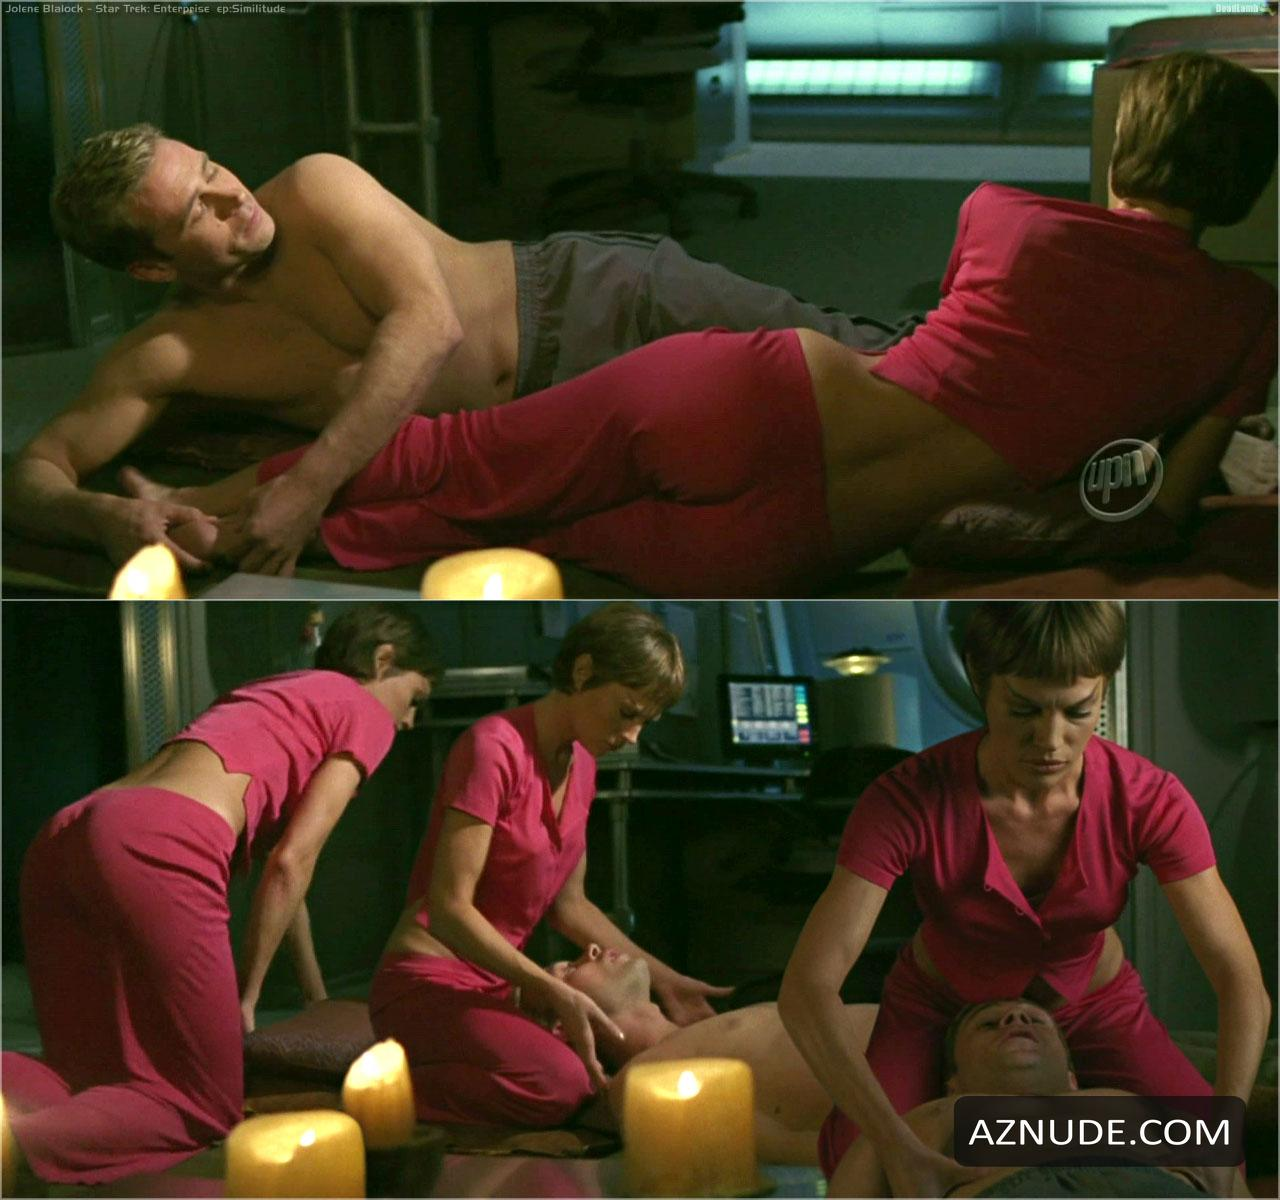 Star Trek Enterprise desnuda